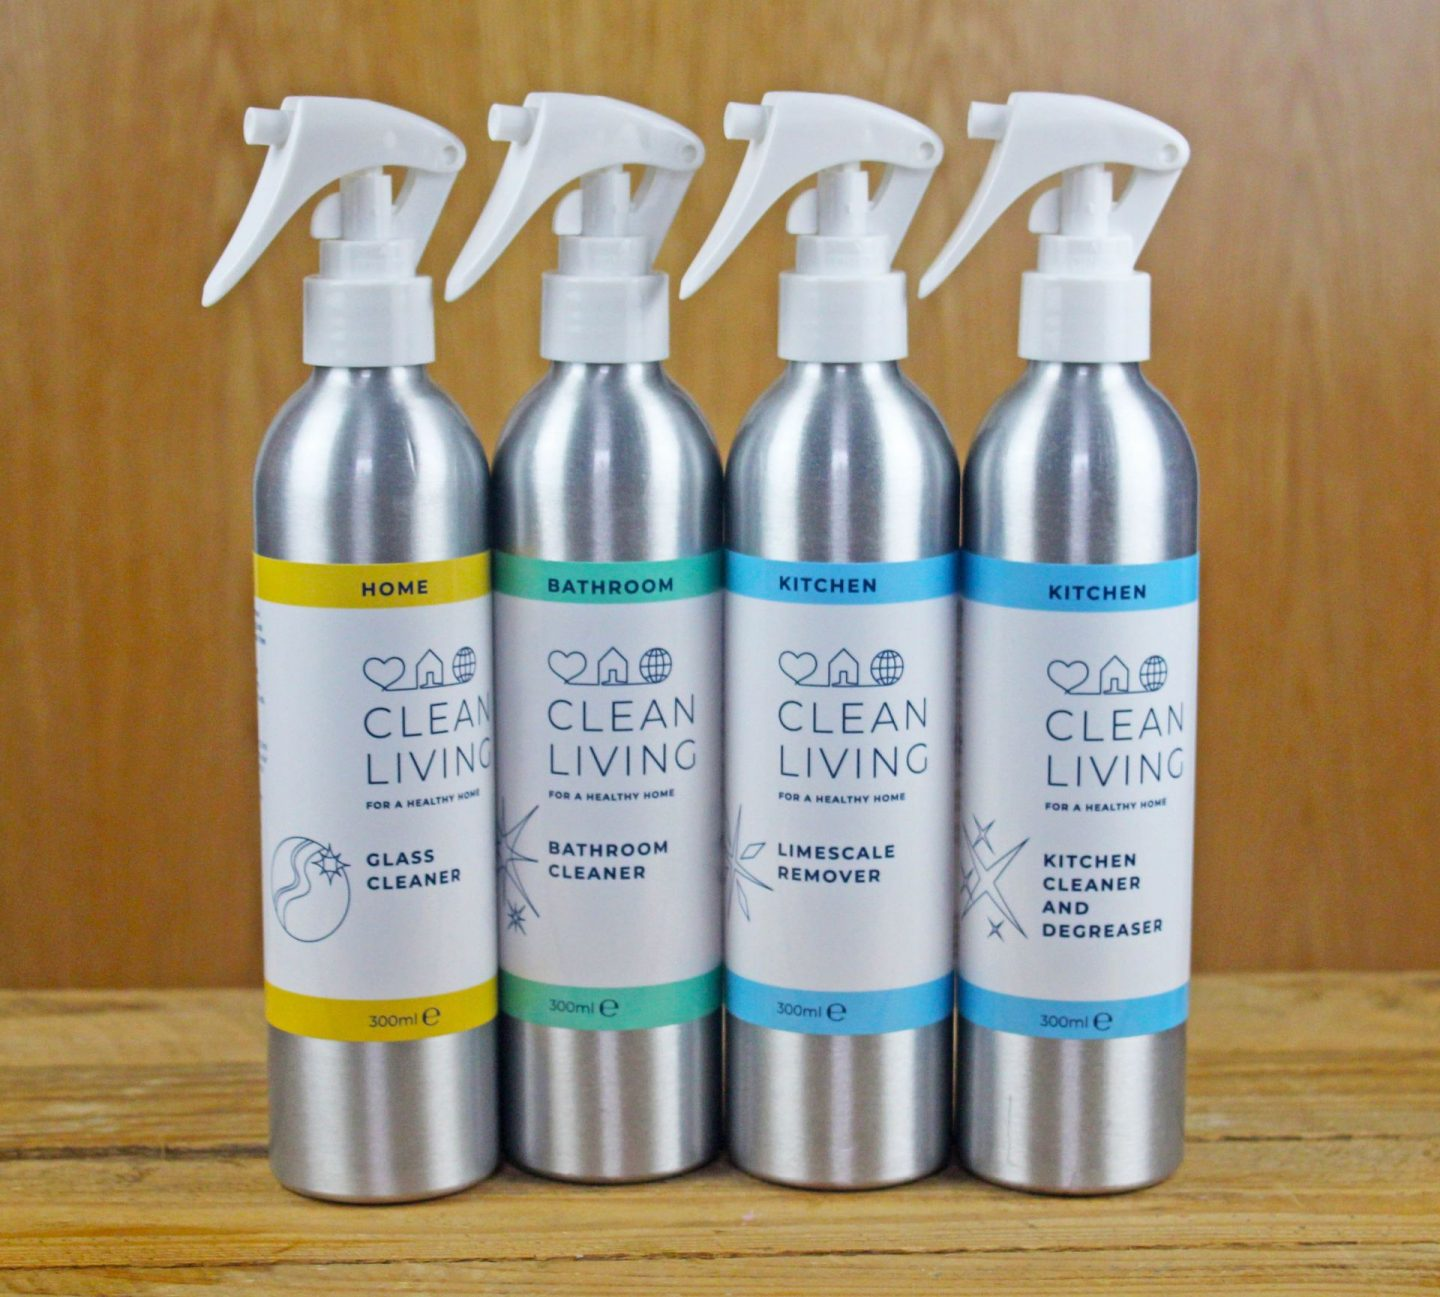 Reusable aluminum bottles for household cleaning products from Clean Living.